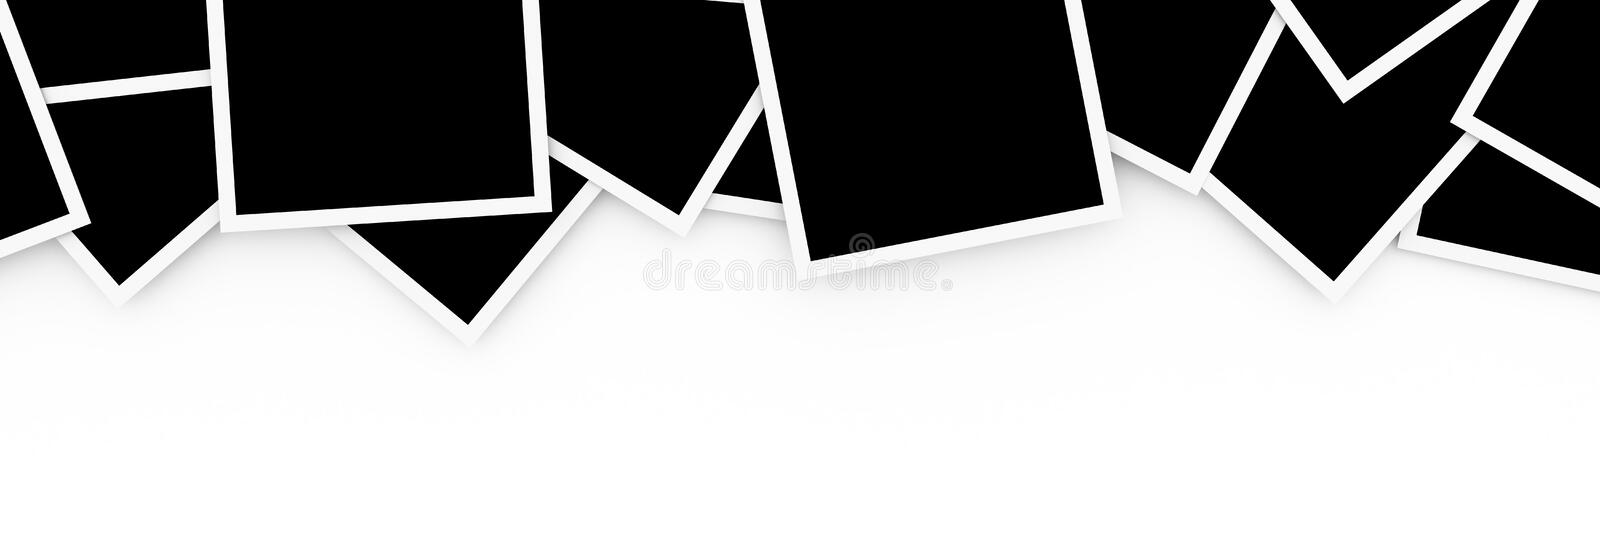 Download Stacks of blank photos stock illustration. Image of photo - 97178867